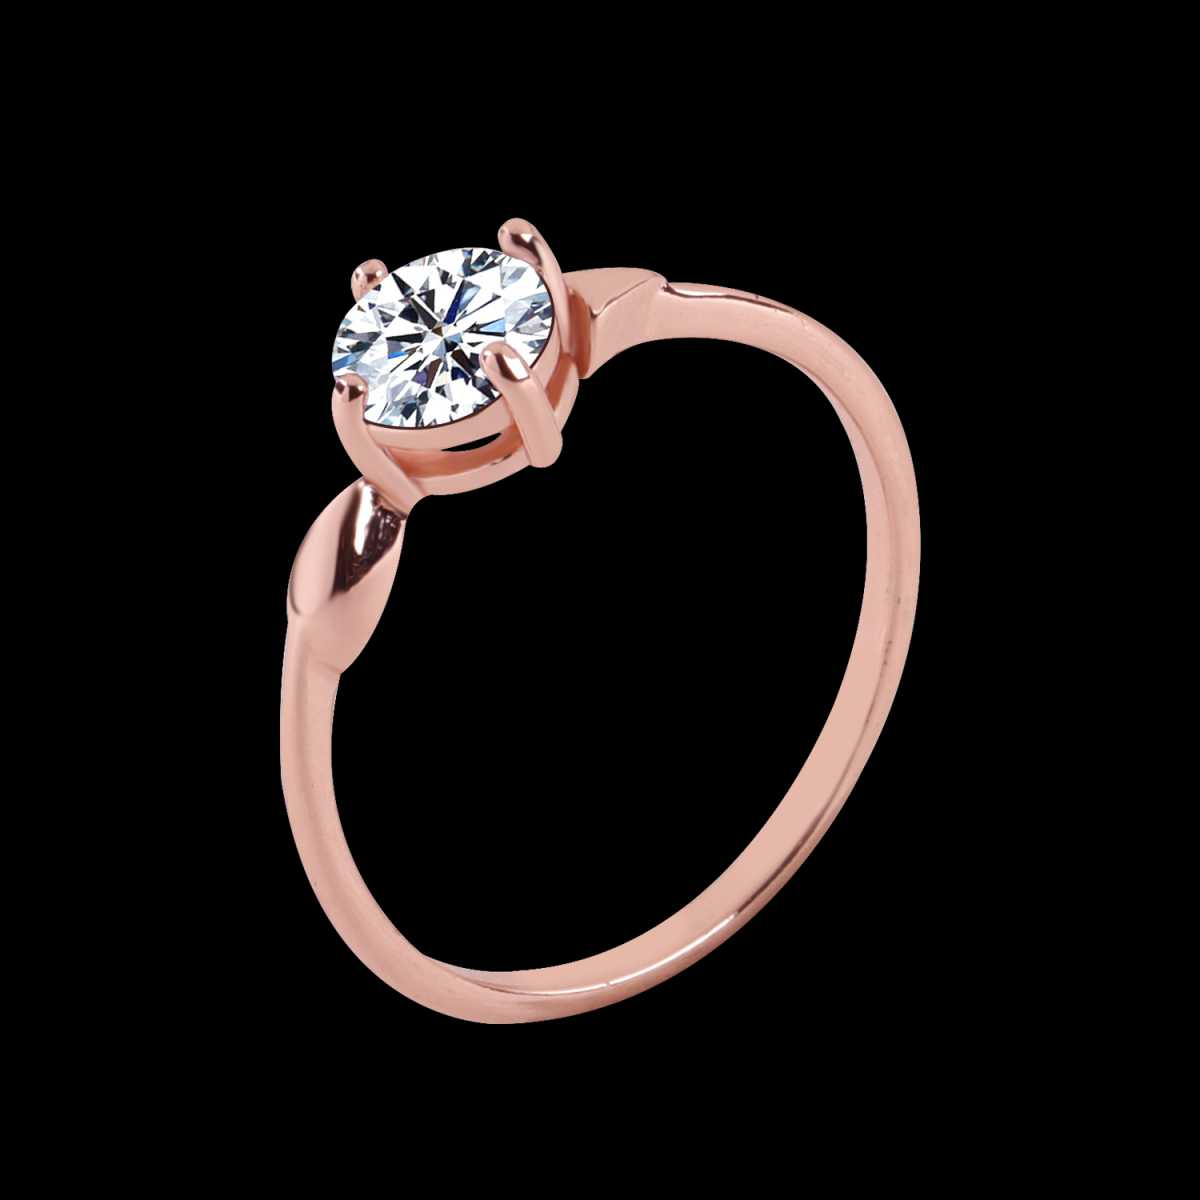 Silver Shine Rose Gold Plated Elegant Classic Crystal Solitaire Ring for Girls and womenwedding ring,jewelry,diamonds,fashion jewelry,couple rings